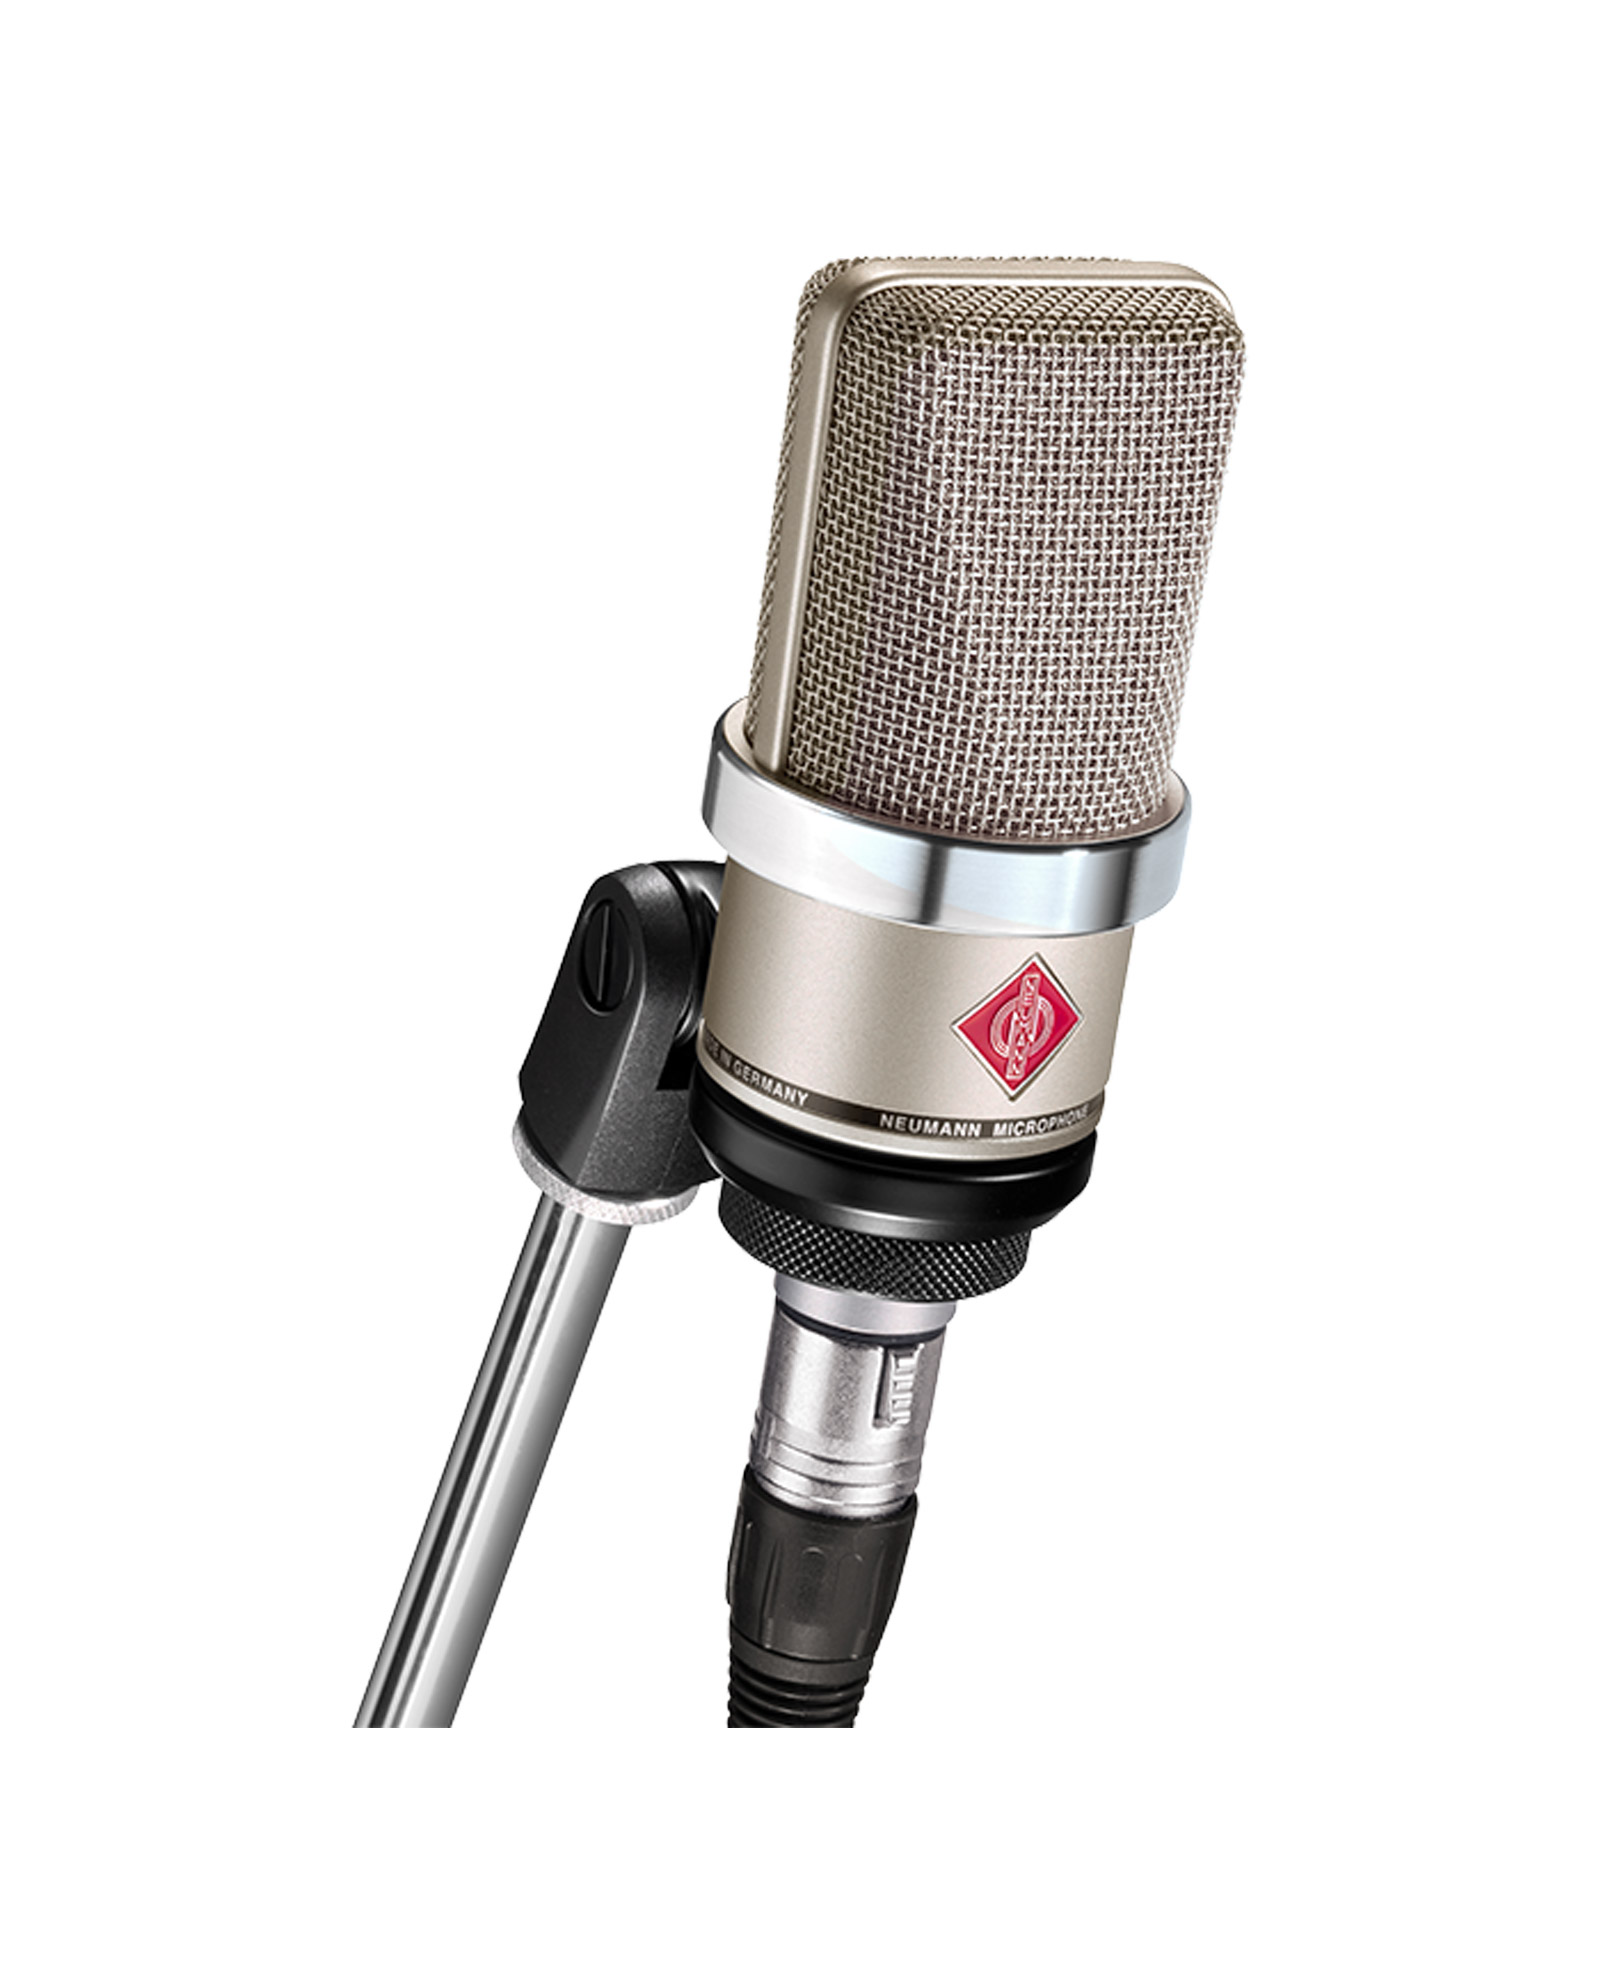 Neumann Tlm 102  large Diaphragm Condensor Microphone 1